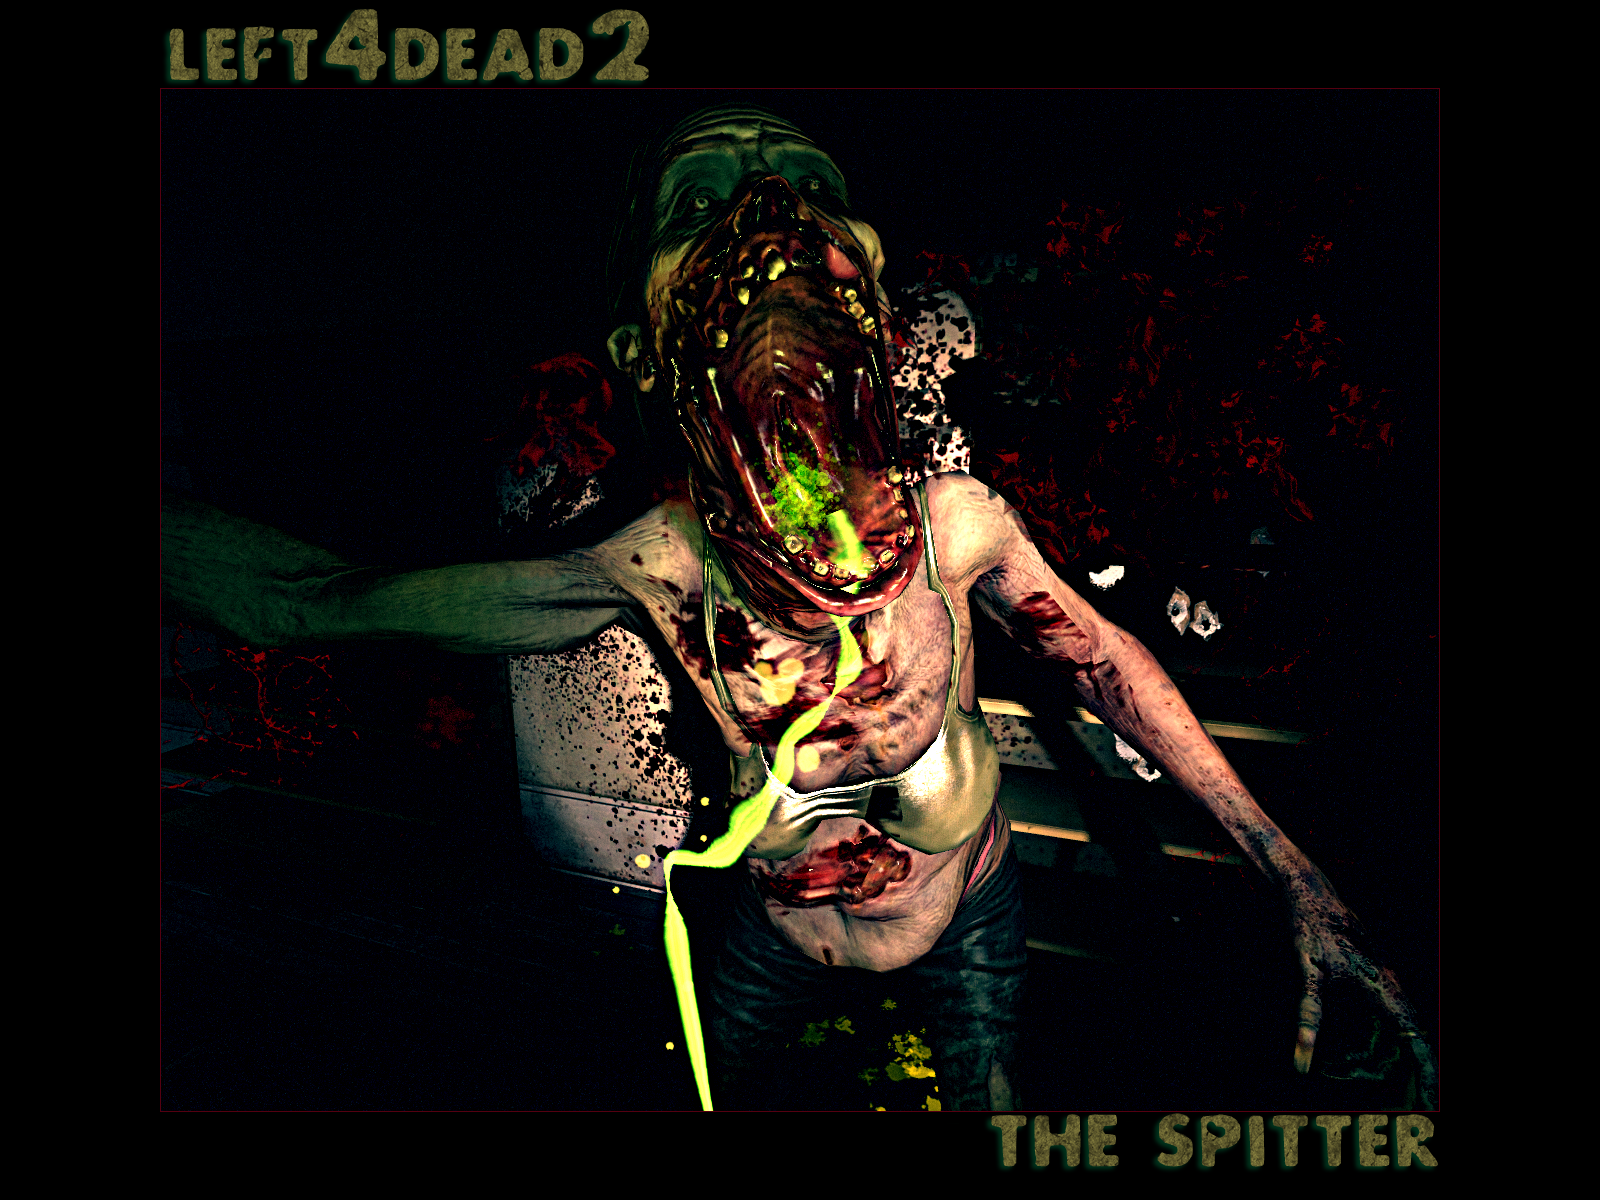 L4d2 Spitter Before Infection